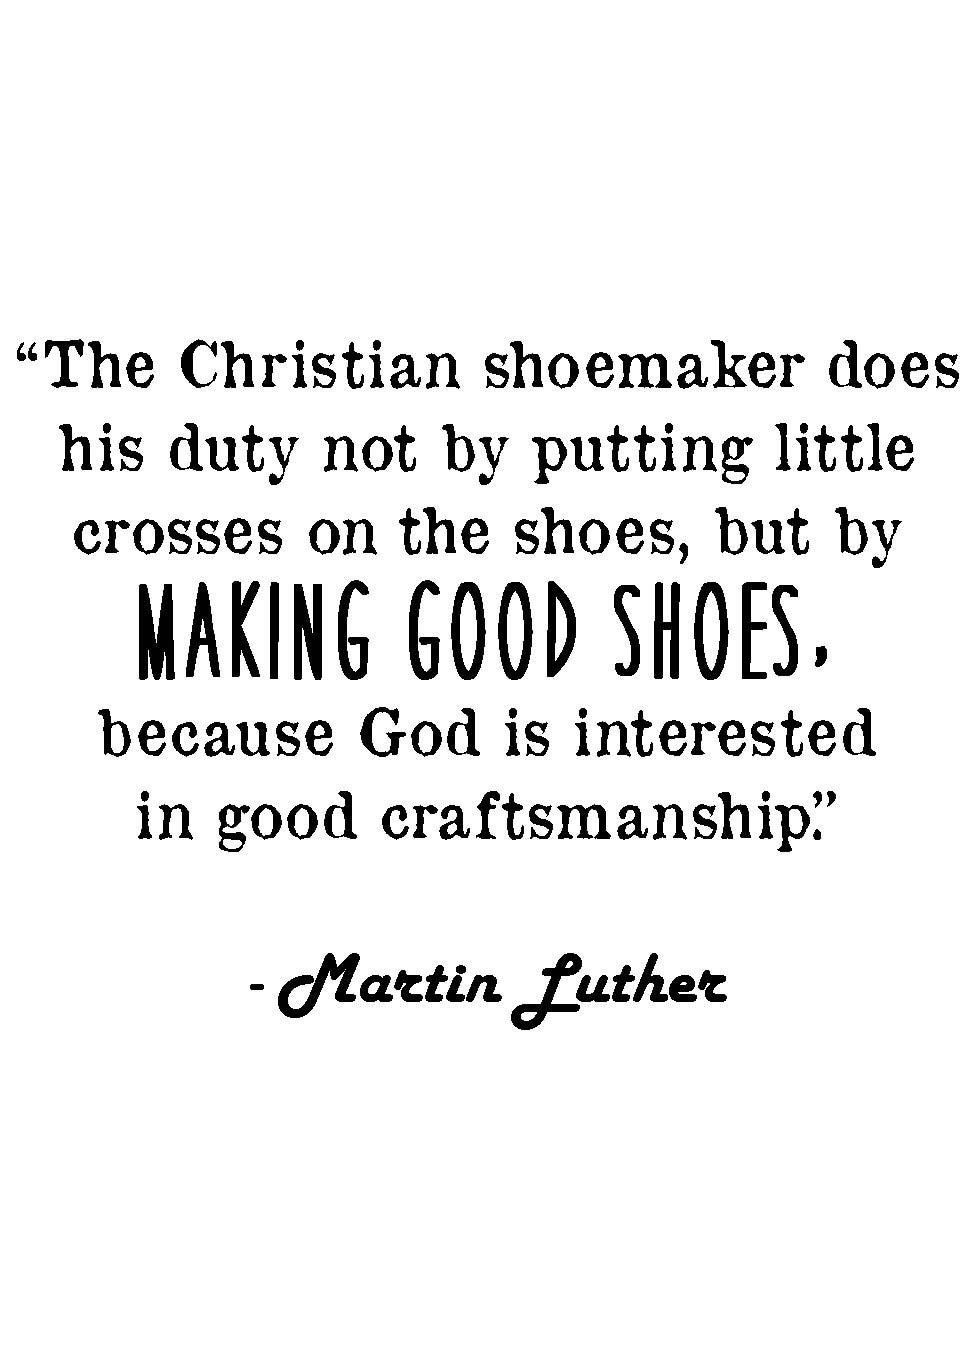 martin luther christian shoemaker quote work ethic faith 🔎zoom